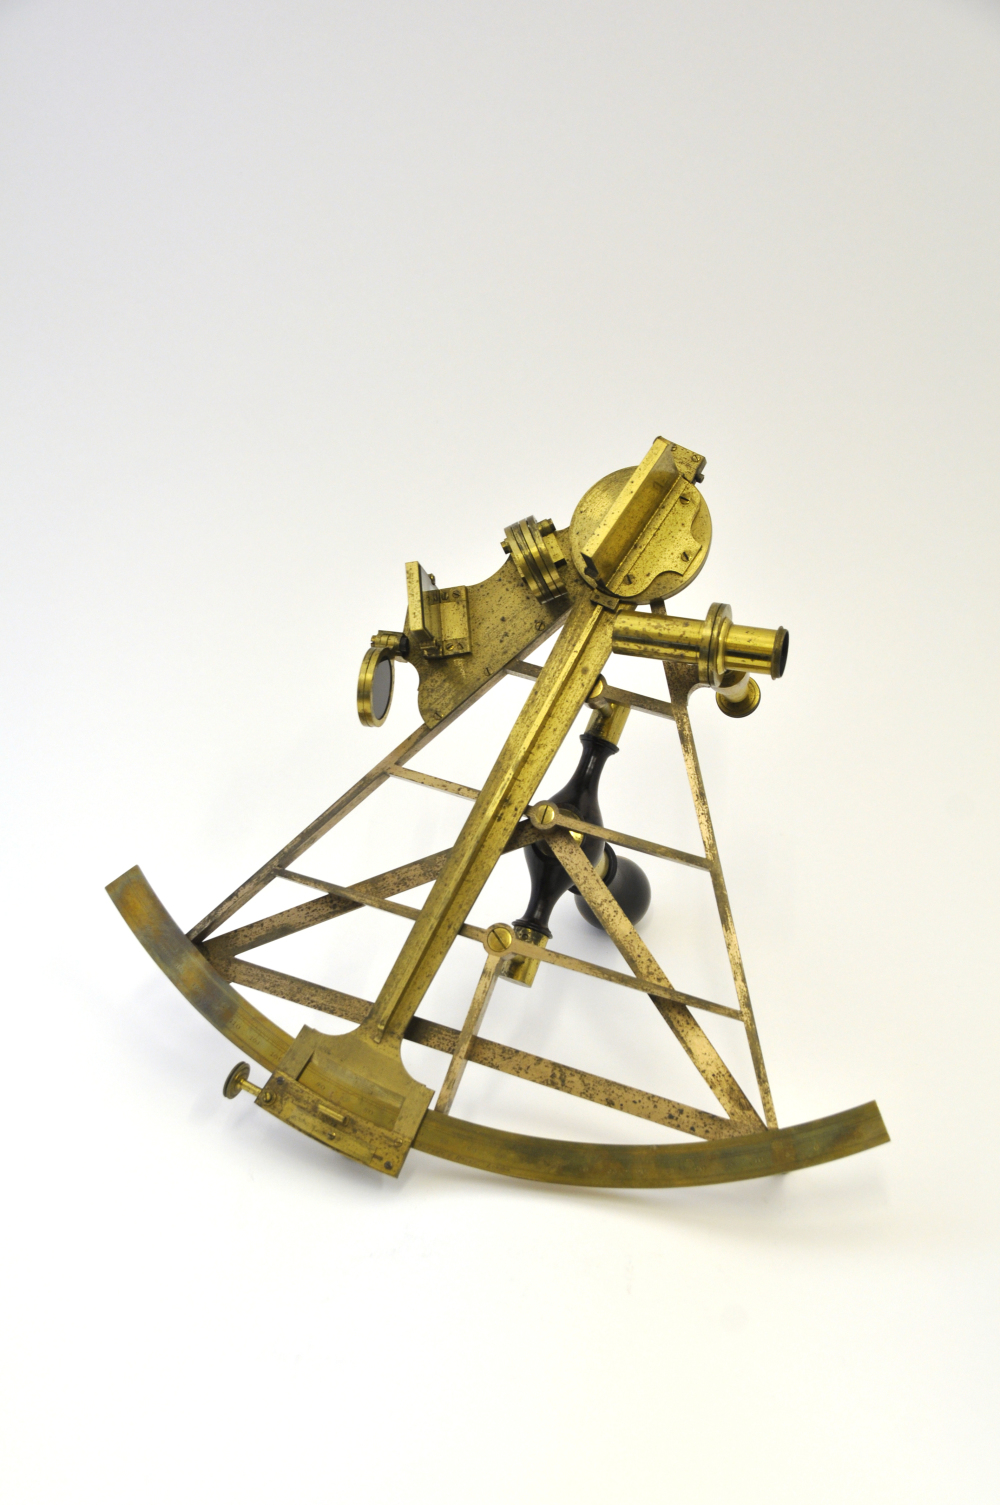 preview image for Sextant with Case and Accessories, by Gilbert, Wright & Hooke, London, 1794-1801